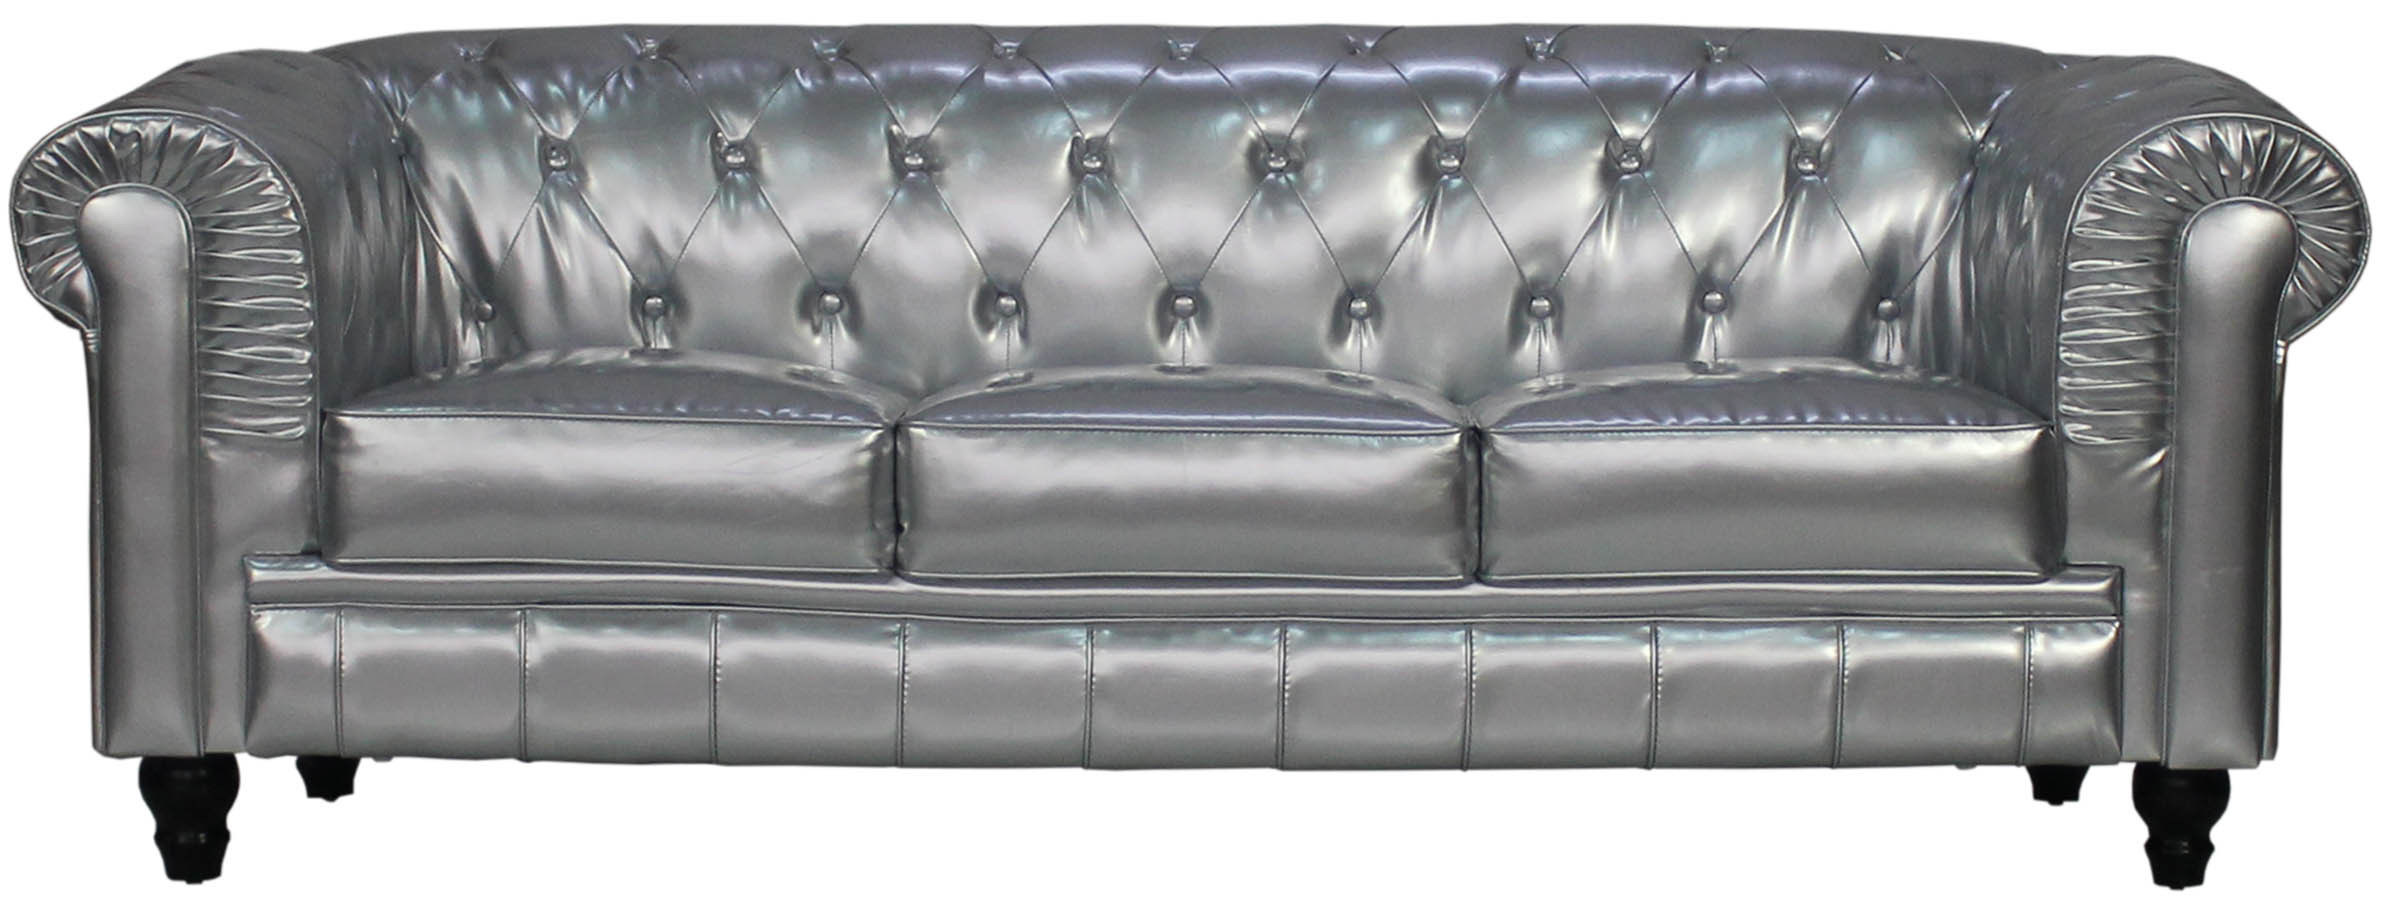 Charmant Benjamin Classical 3 Seater PU Leather Sofa In Silver